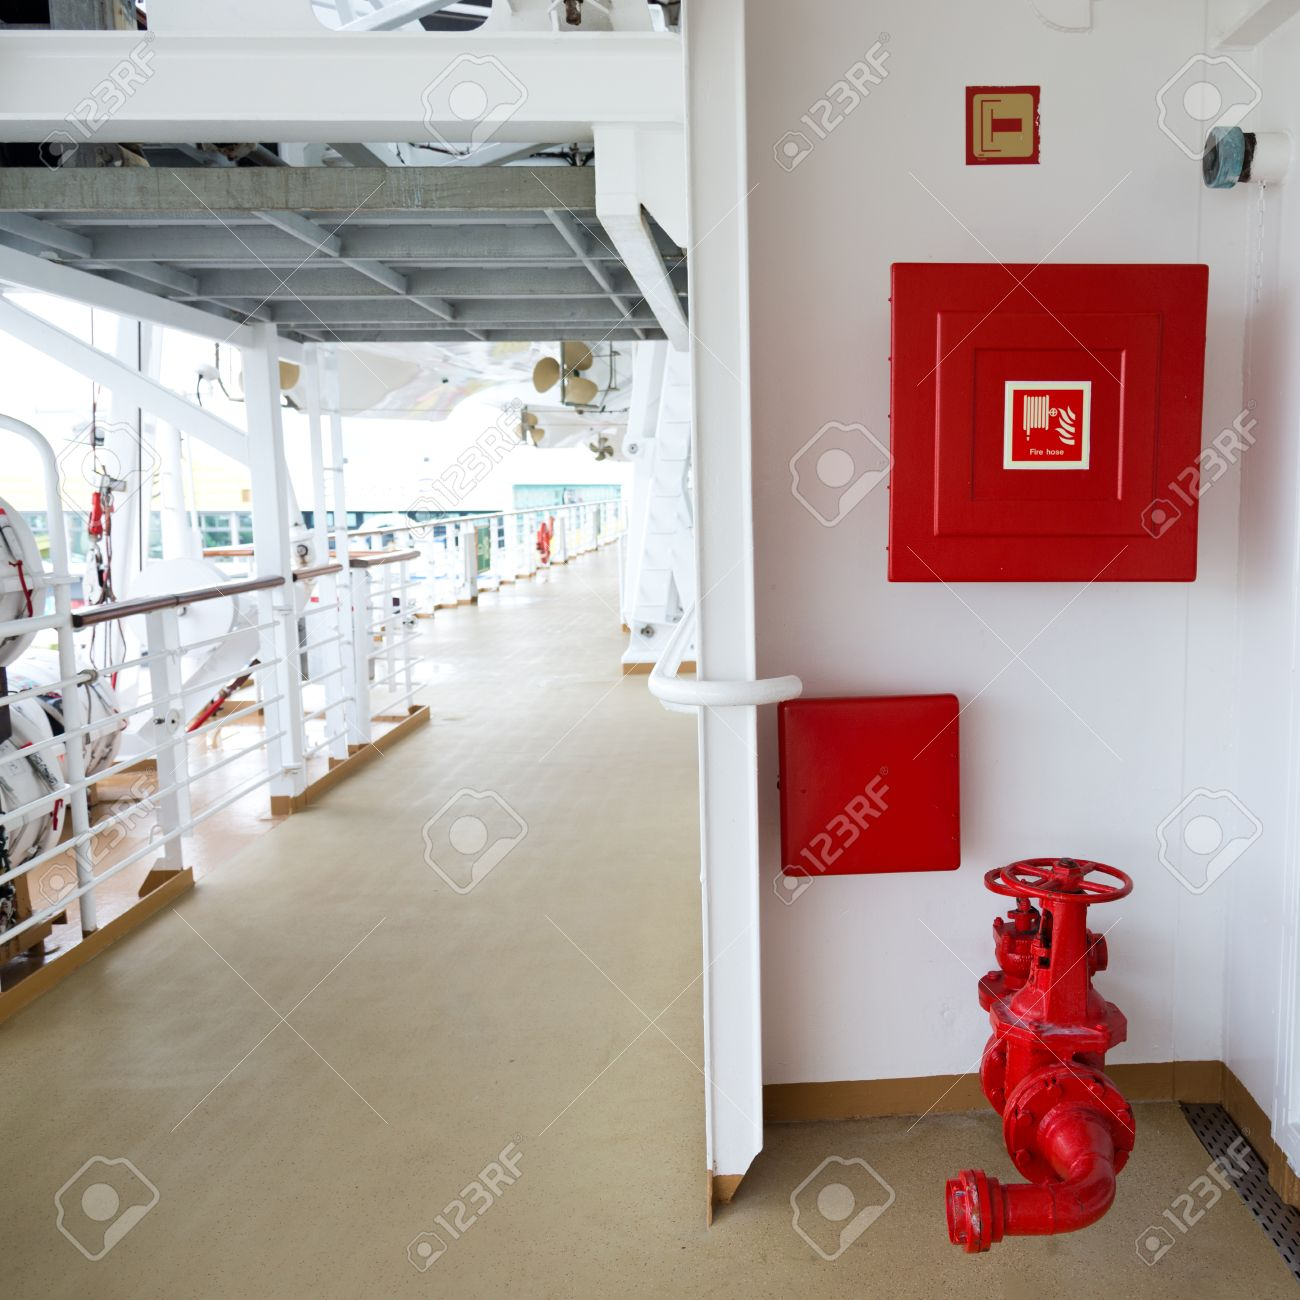 American Fire Hose And Cabinet Fire Hose Cabinet On A Ship Stock Photo Picture And Royalty Free